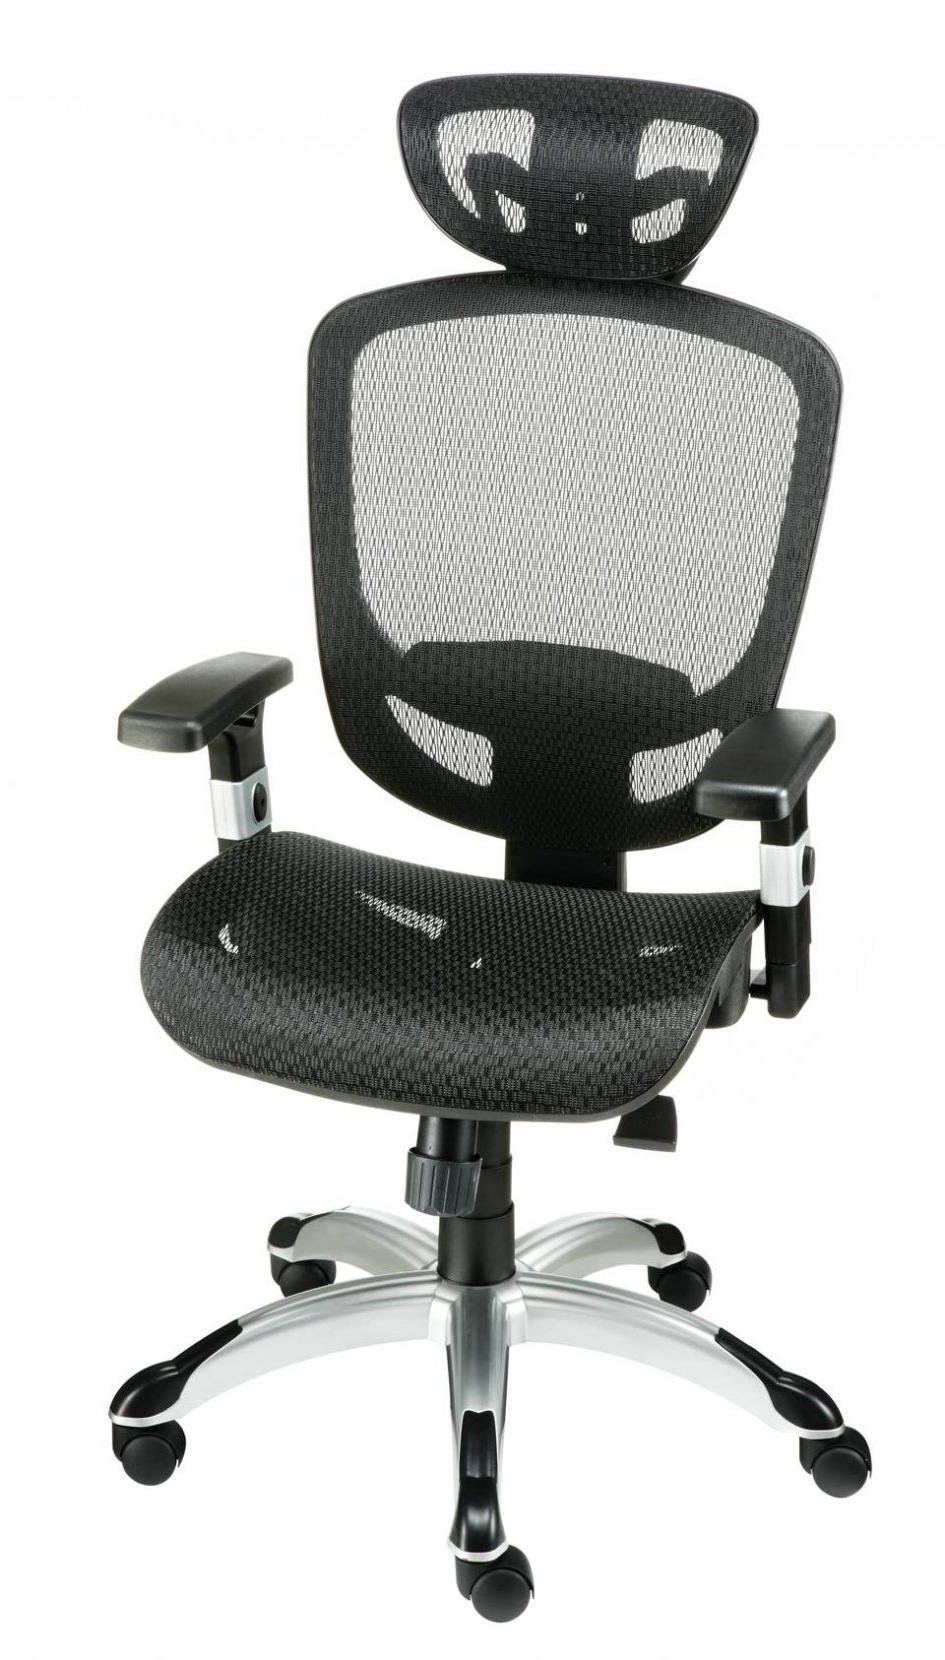 Comfortable Desk Chair Massage Office Chair Buy Office Chair With Most Current Executive Office Chairs With Massage/heat (View 2 of 20)